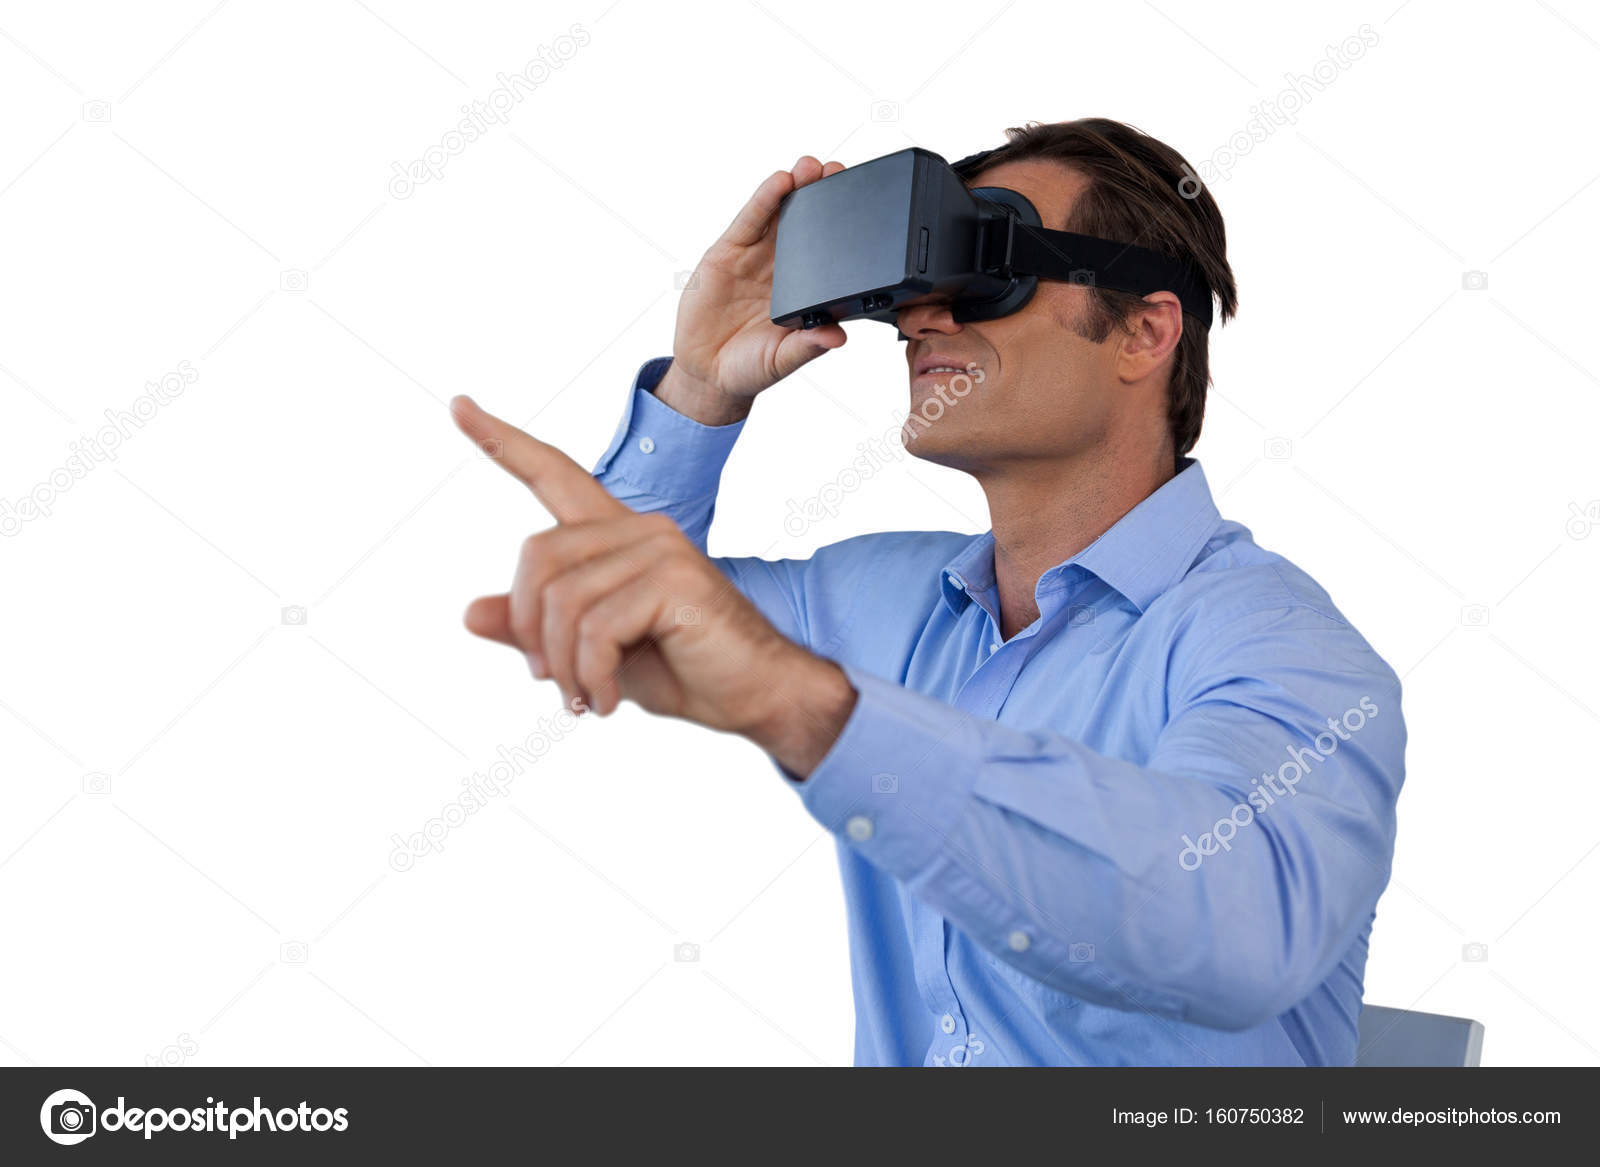 dbf2b053cfe Businessman gesturing while using virtual reality simulator against white  background — Photo by ...